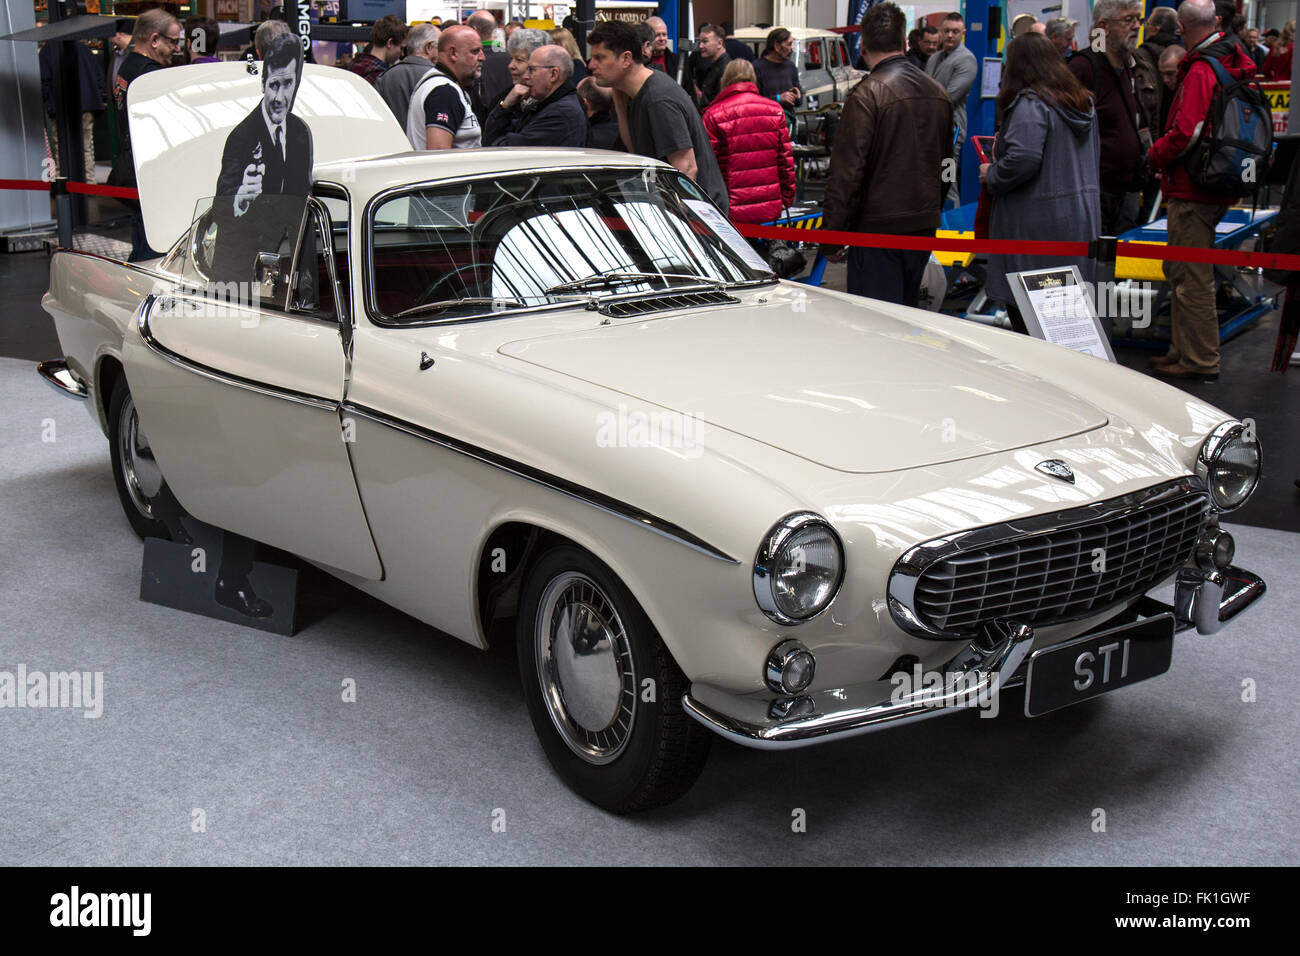 The Volvo P1800 Coupe driven by Roger Moore in the television programme The Saint. - Stock Image